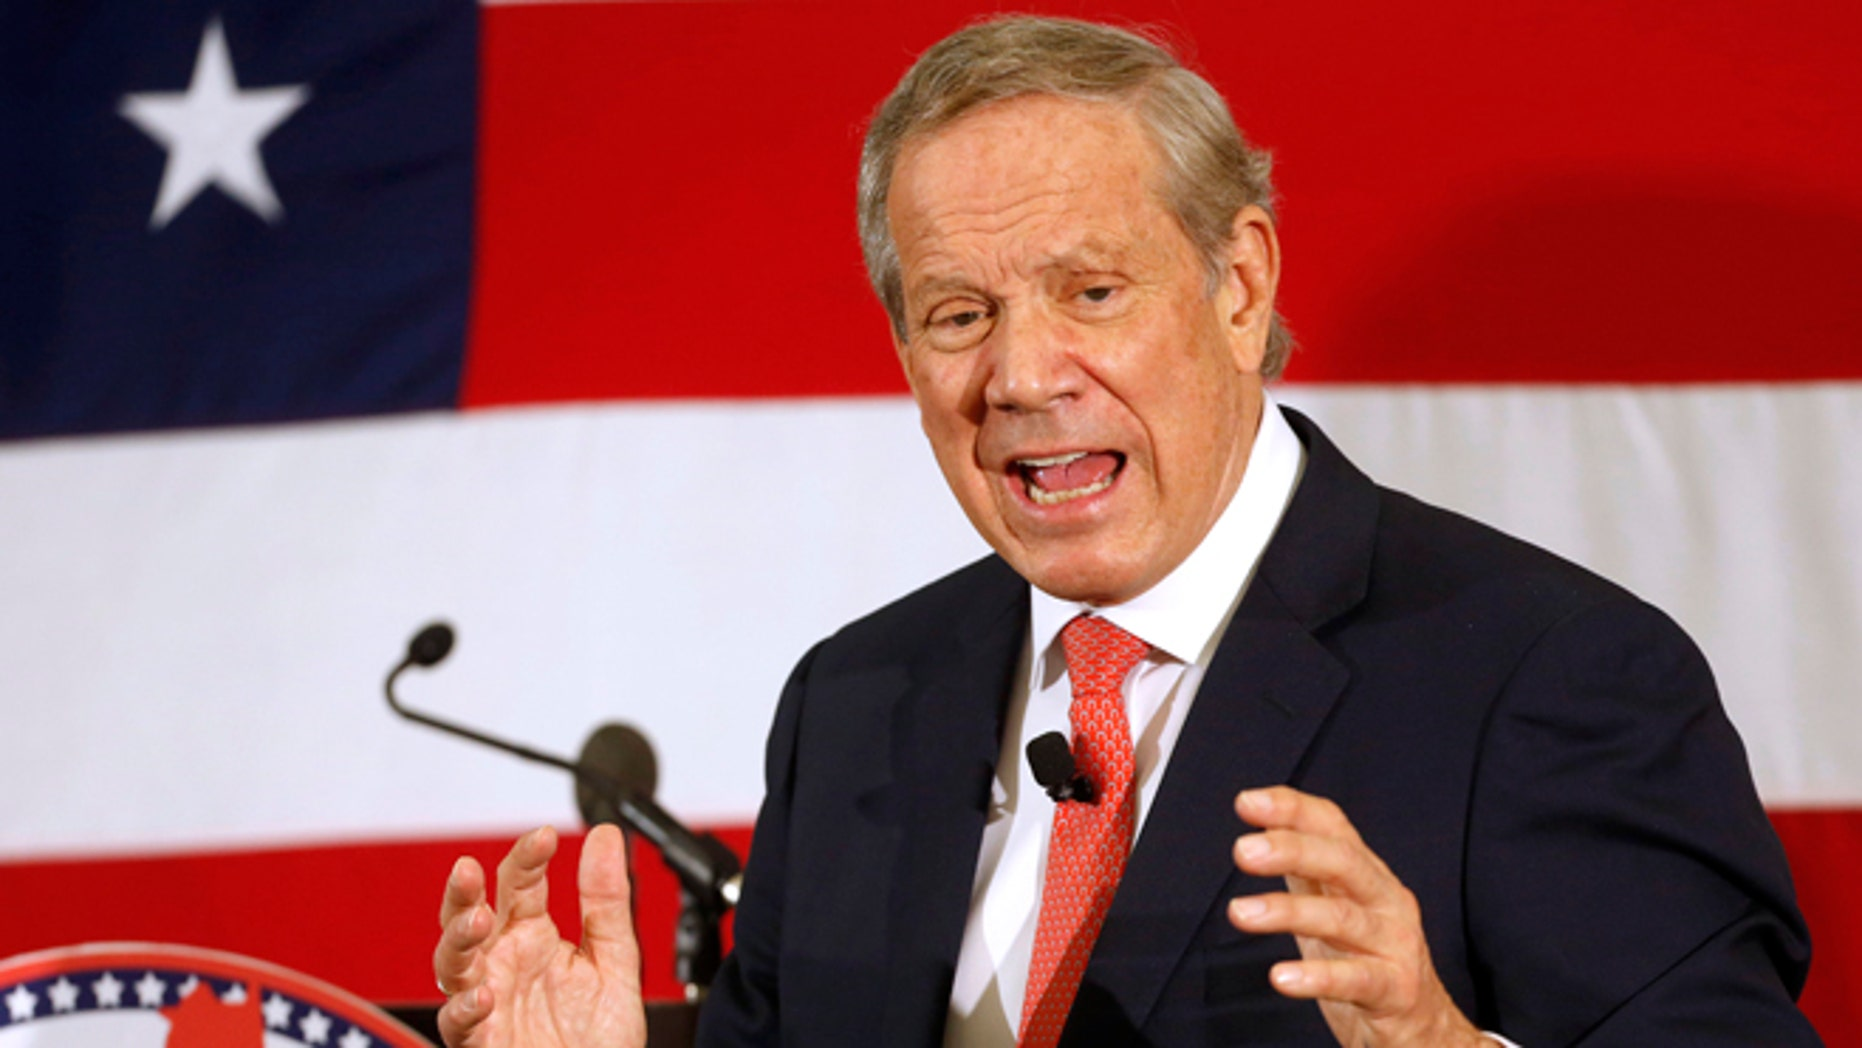 FILE - In this April 17, 2015 file photo, former Gov., N.Y., George Pataki speaks in Nashua, N.H.  Pataki will announce May 28 in New Hampshire whether he intends to seek the Republican nomination for president, he said Thursday. (AP Photo/Jim Cole, File)